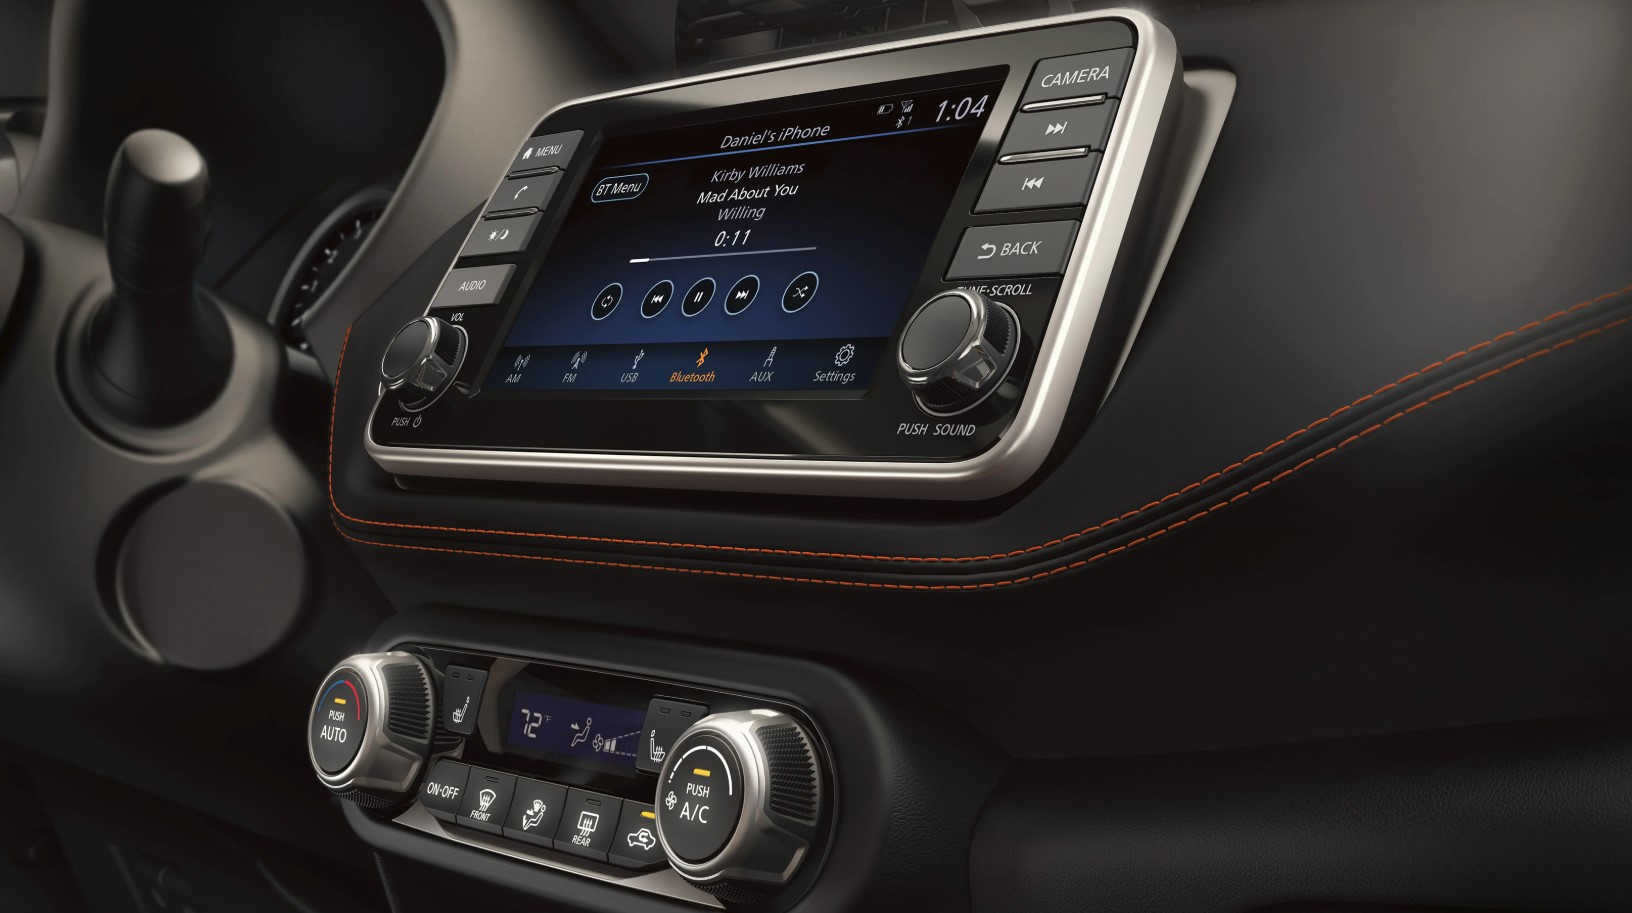 2019 Kicks Infotainment System